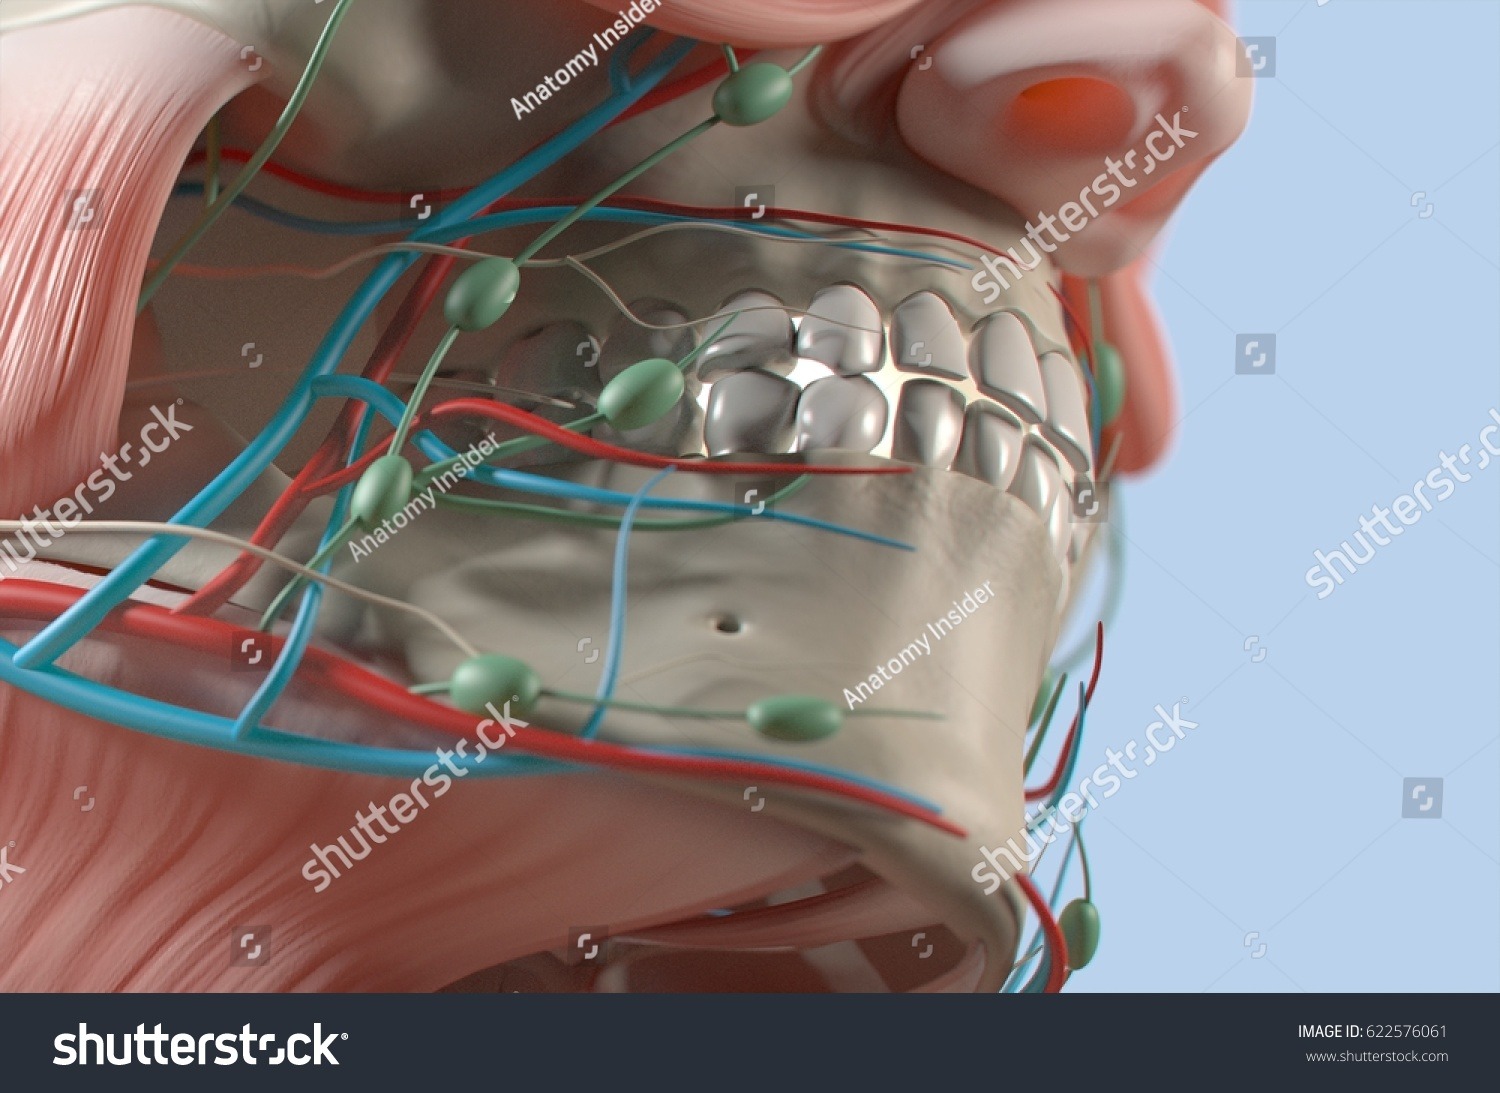 Anatomical Dental Model Human Teeth Dentistry Stock Illustration ...